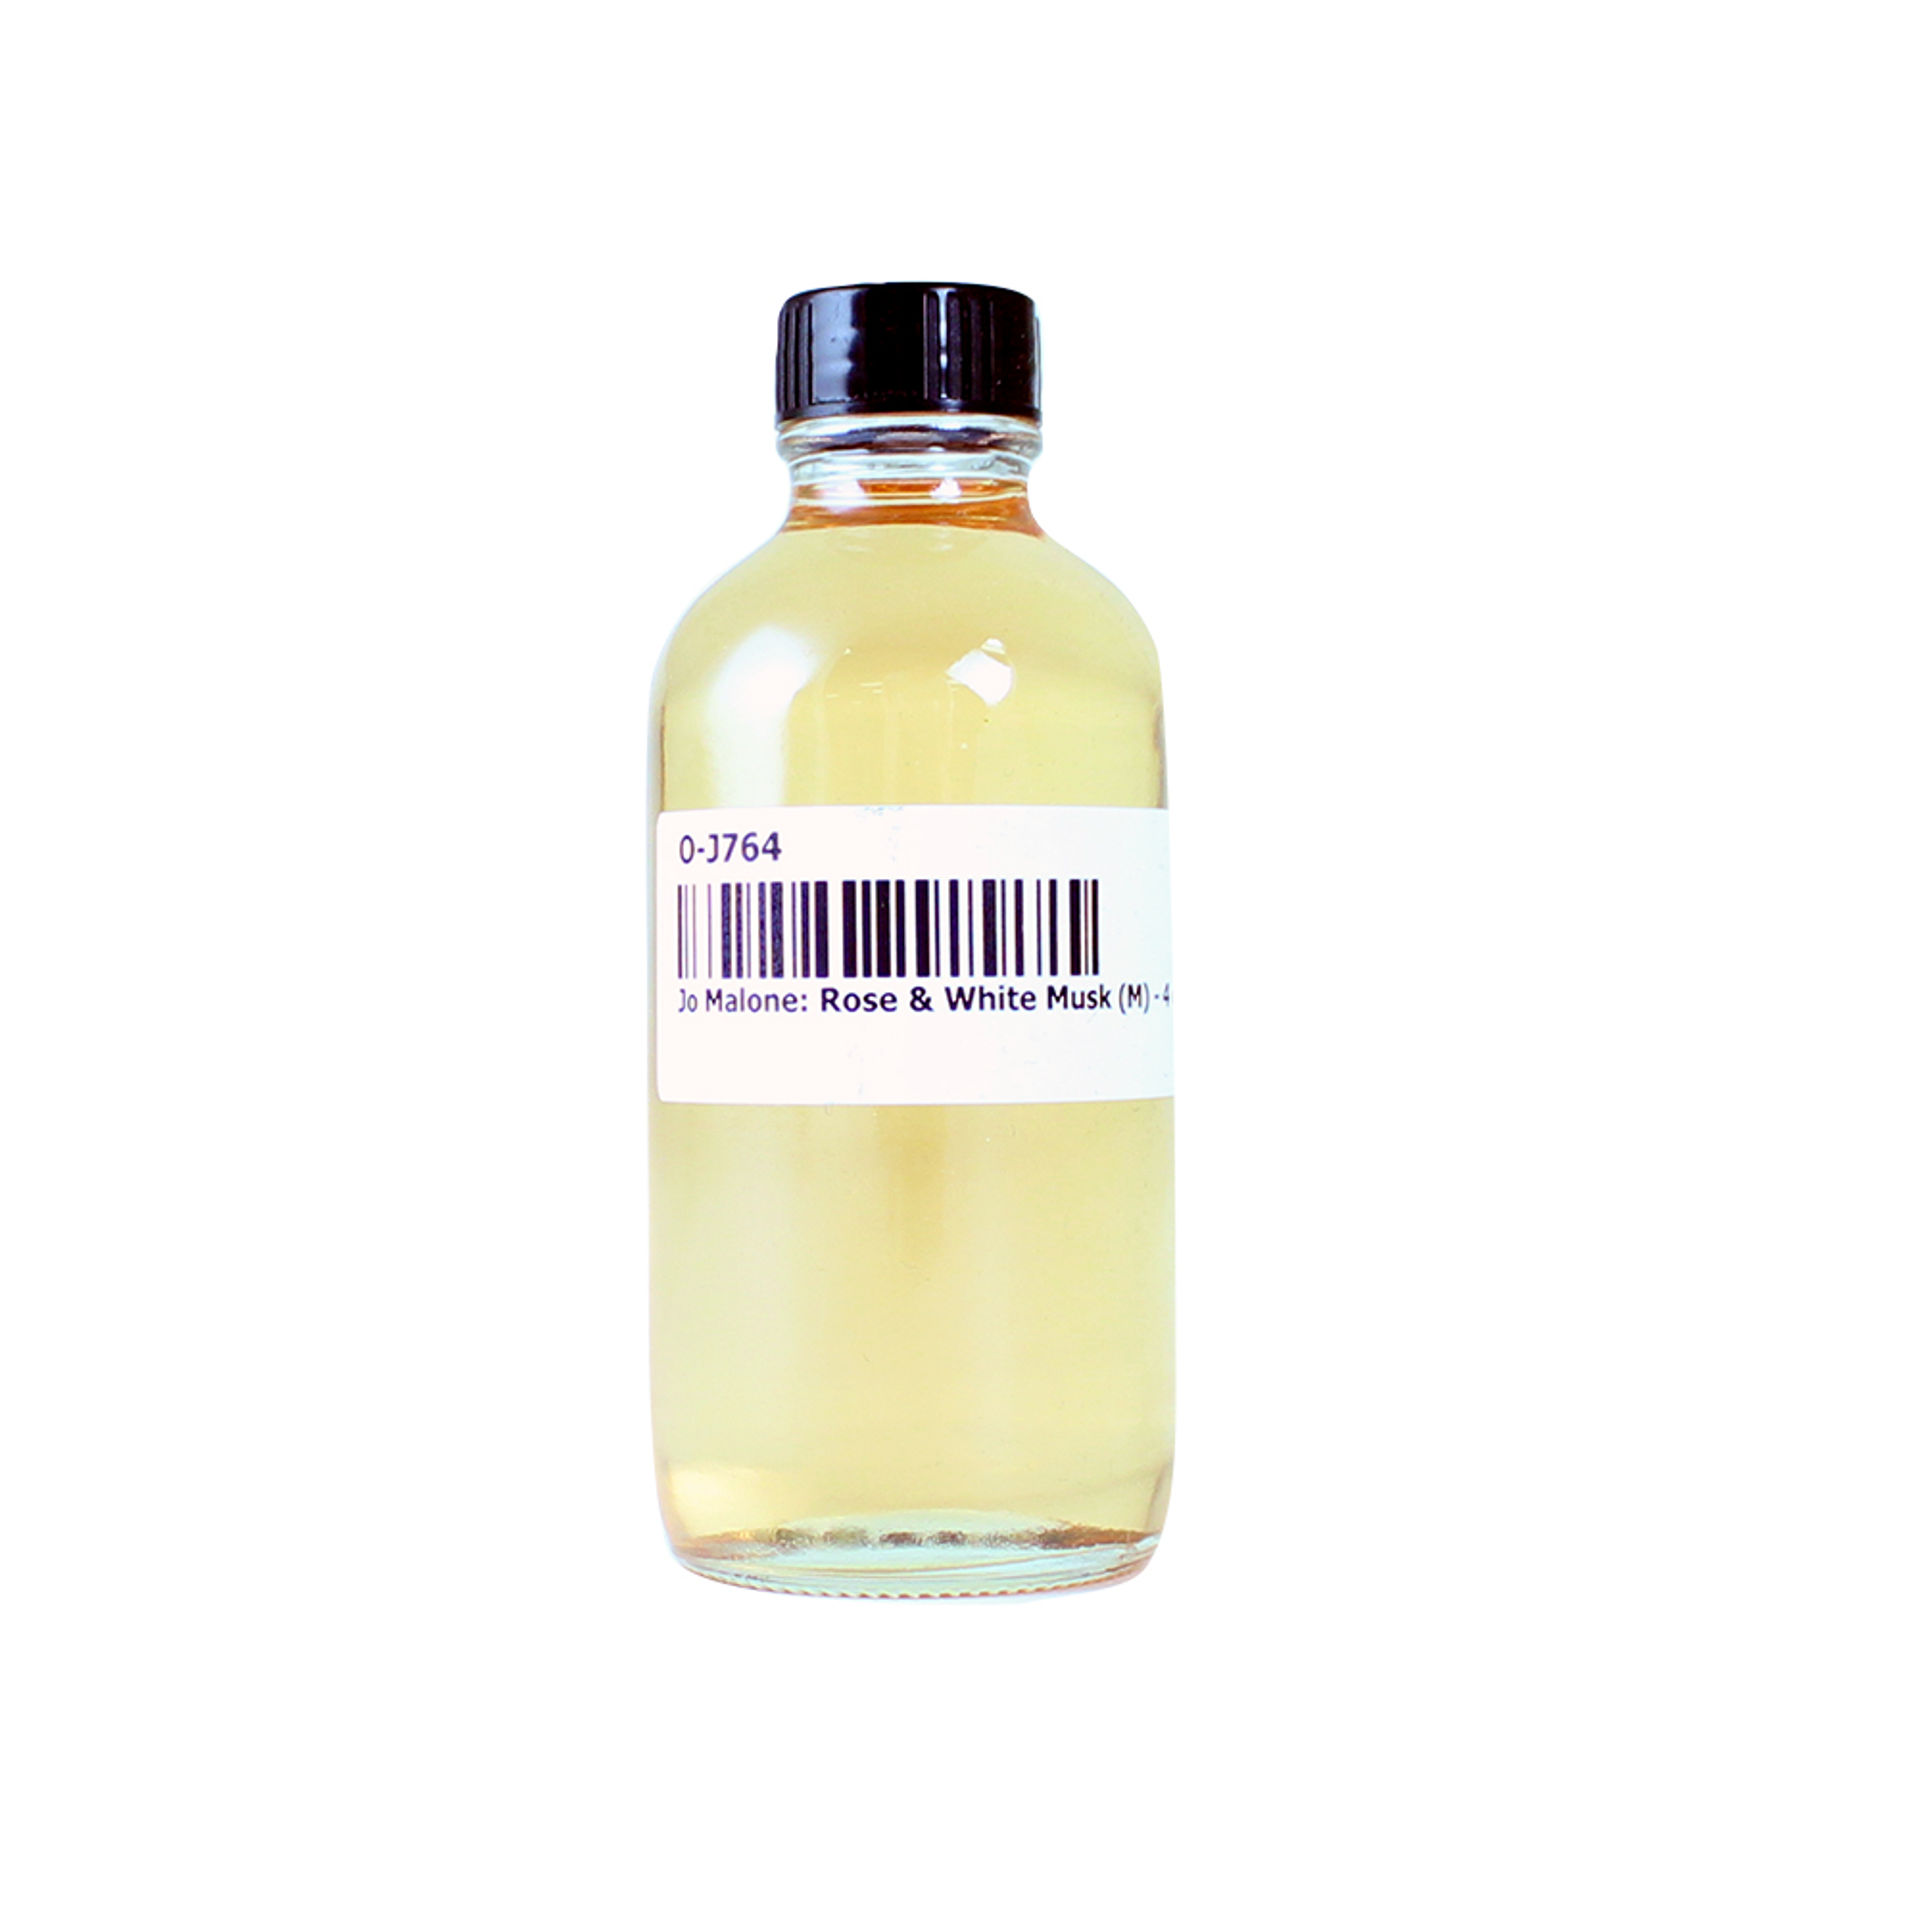 Picture of Jo Malone: Rose & White Musk (M) - 4 oz.